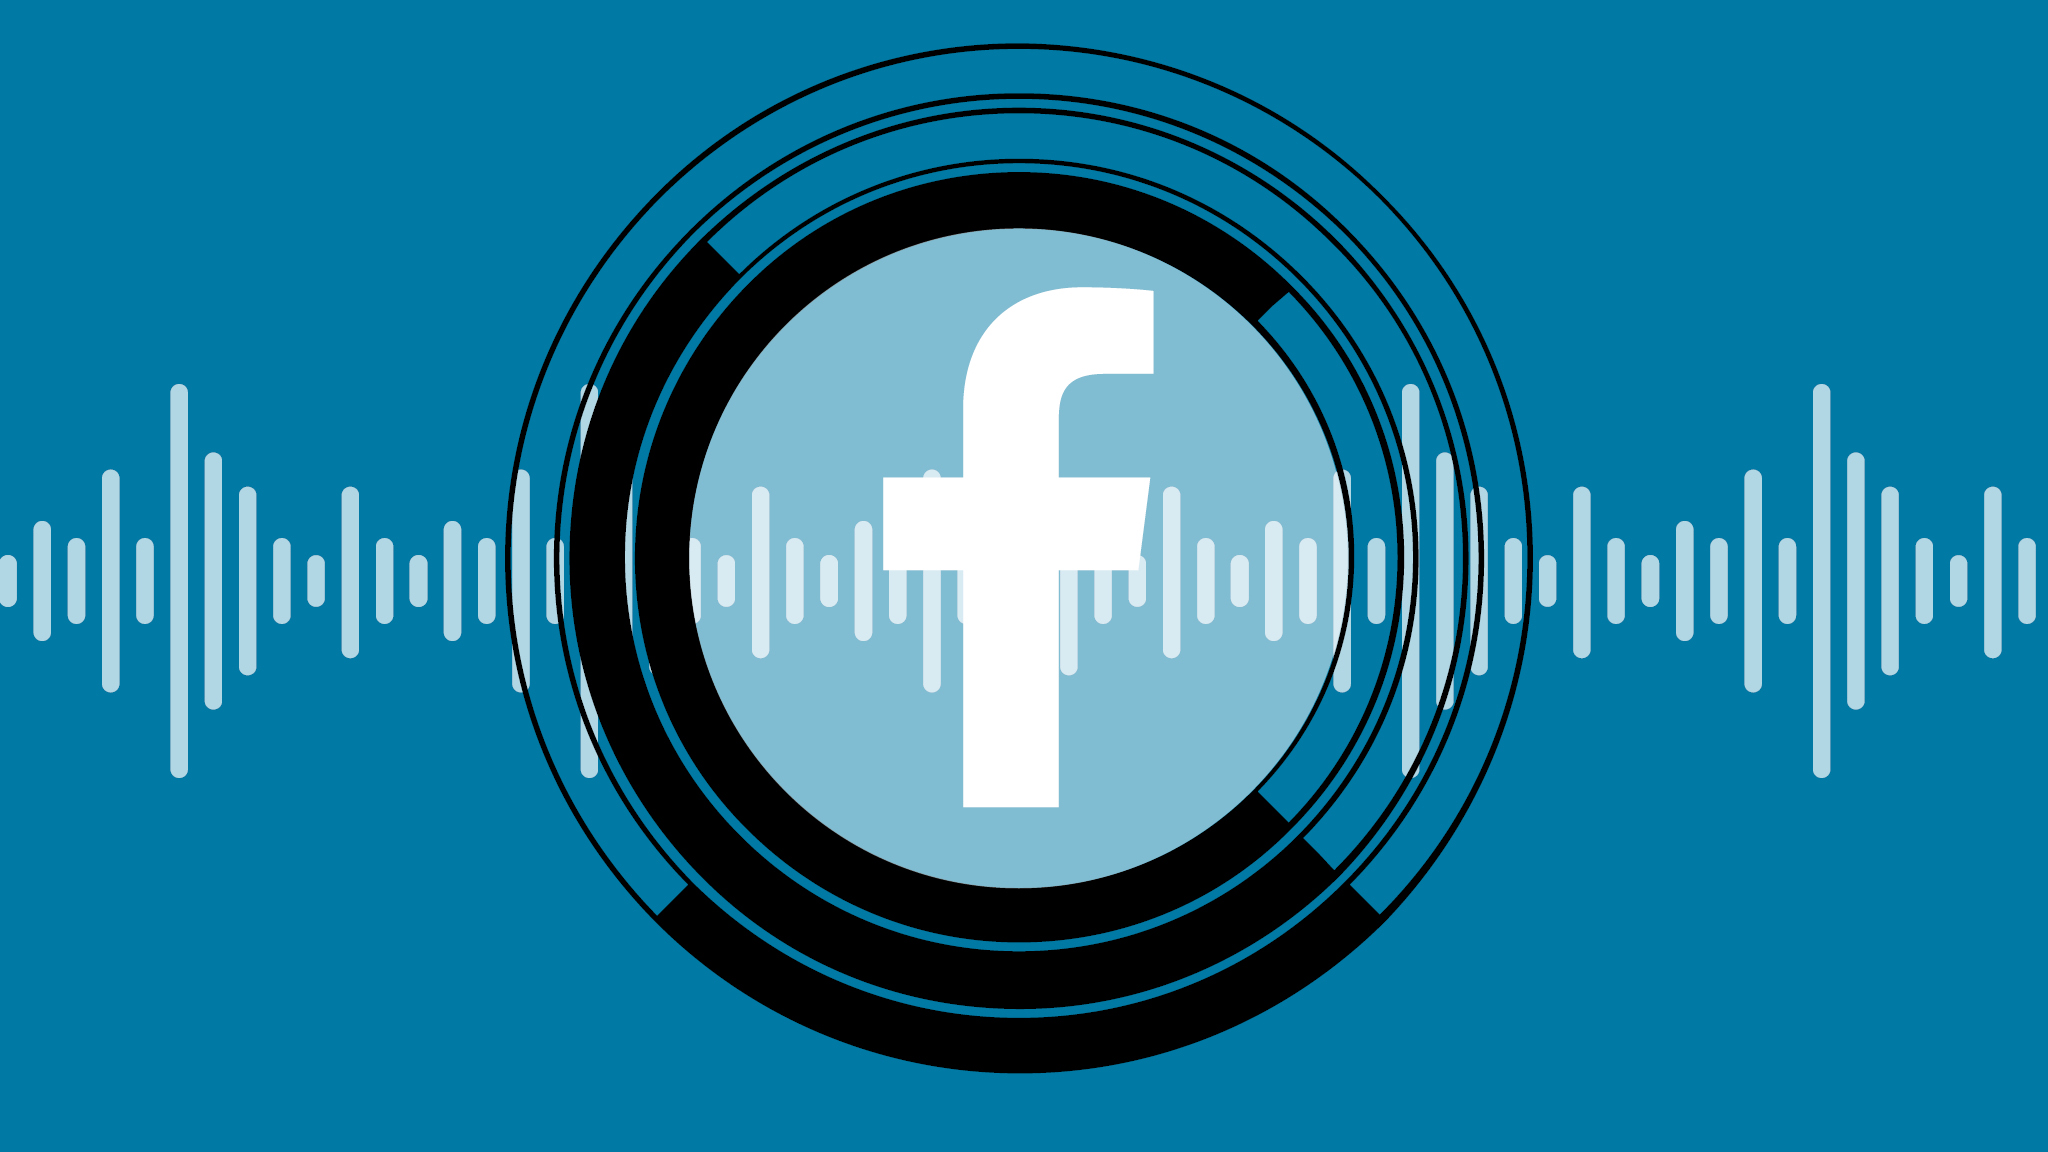 Facebook Looks To Change The Tune With Move Into Music Financial Times